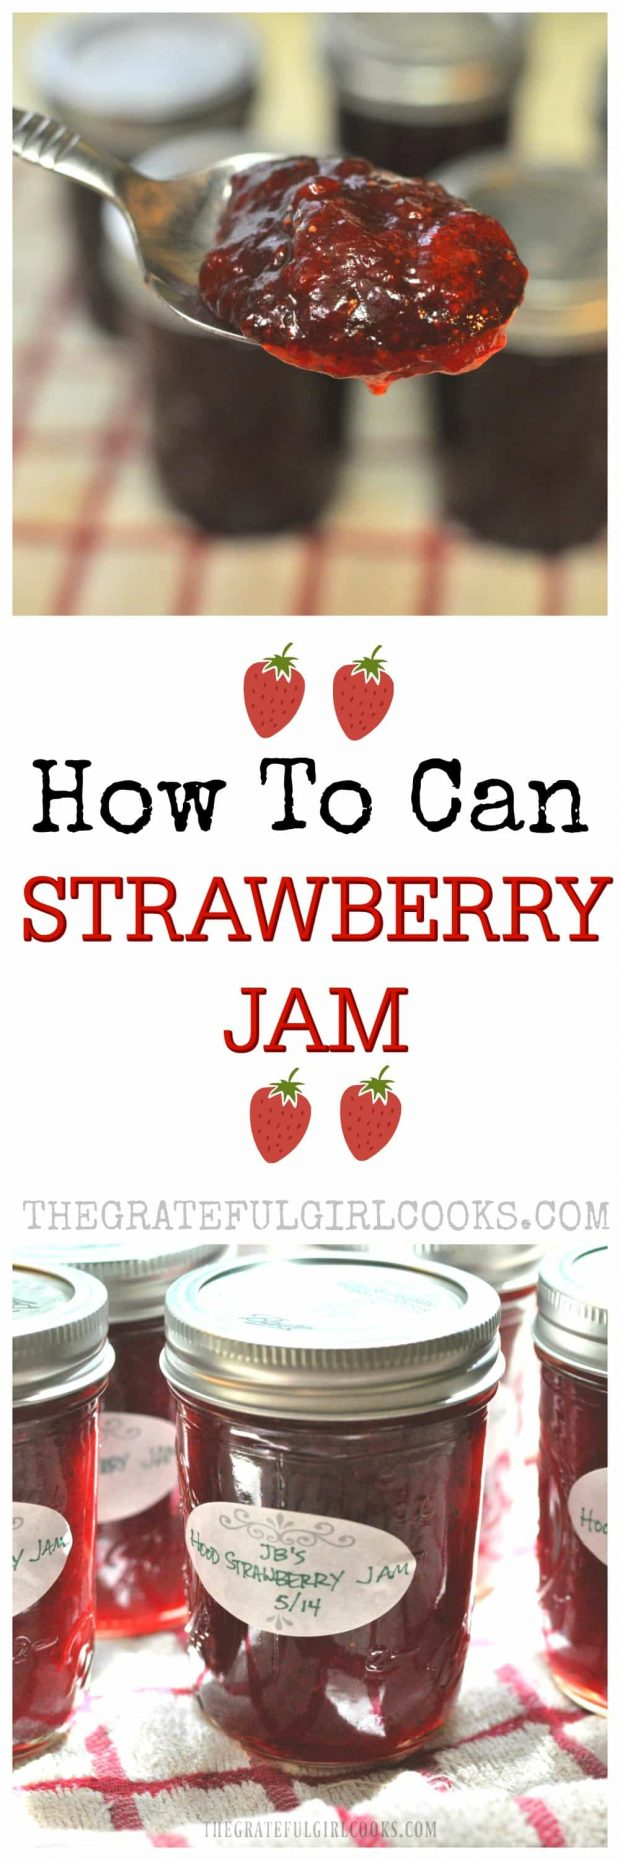 Long pin for how to can strawberry jam